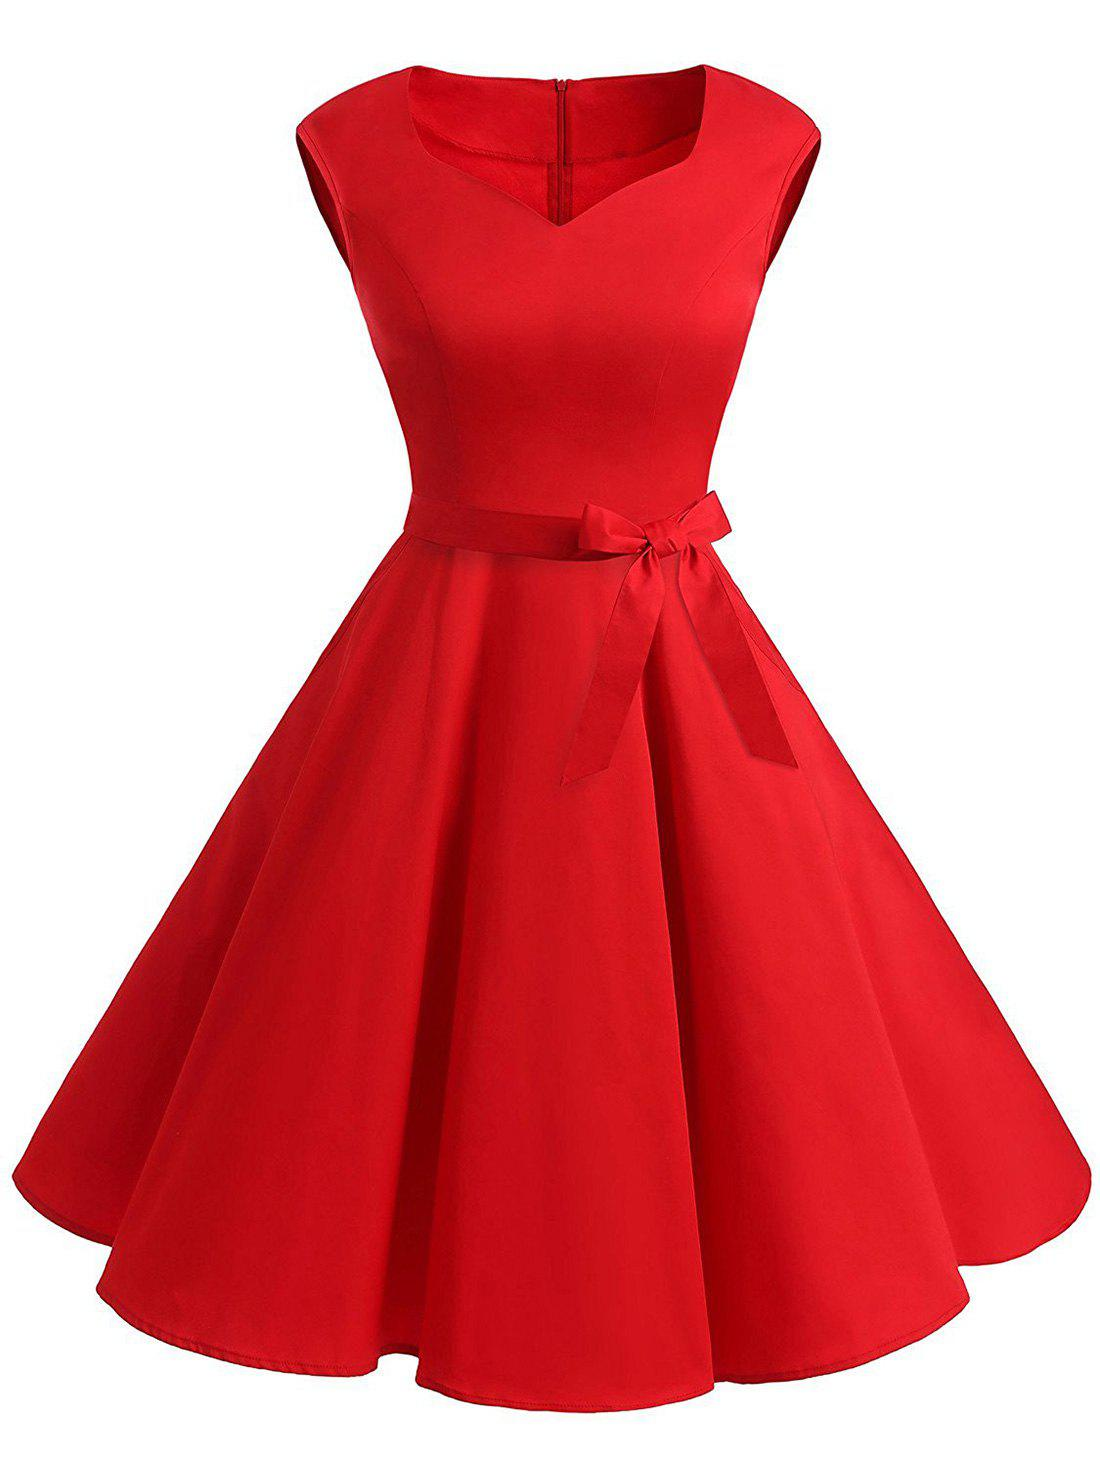 Hot Vintage Sweetheart Neck Fit and Flare Dress